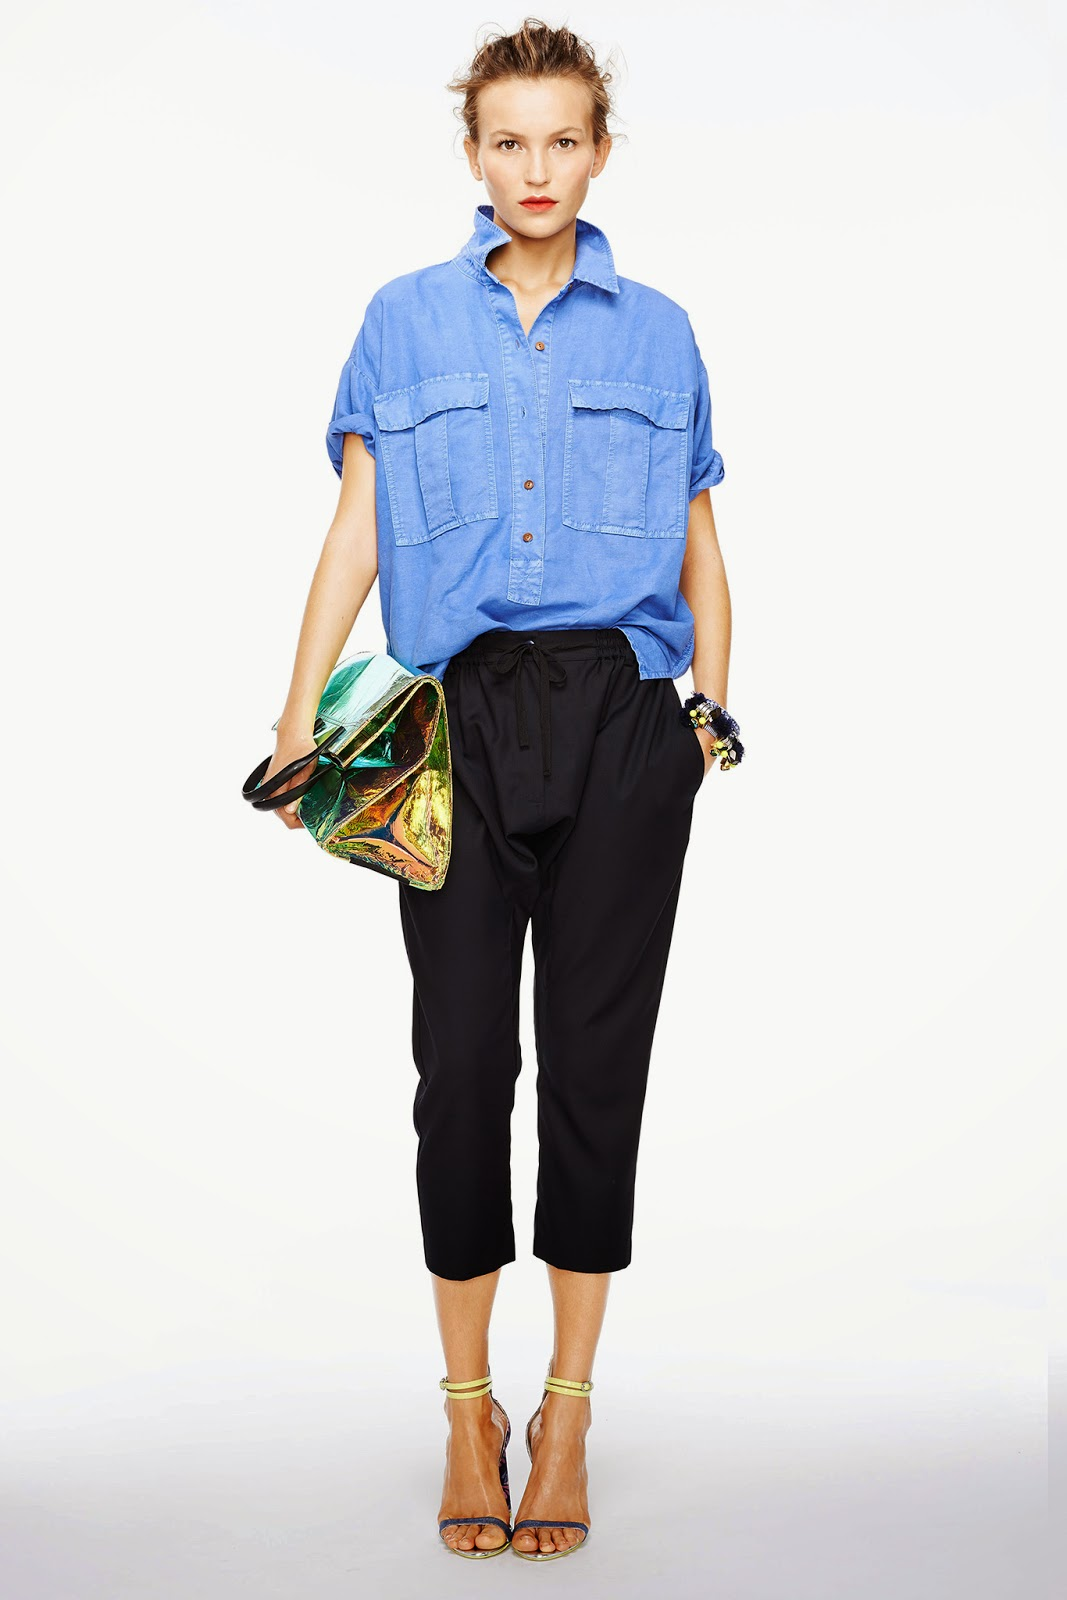 j crew aficionada j crew spring 2015 collection looks